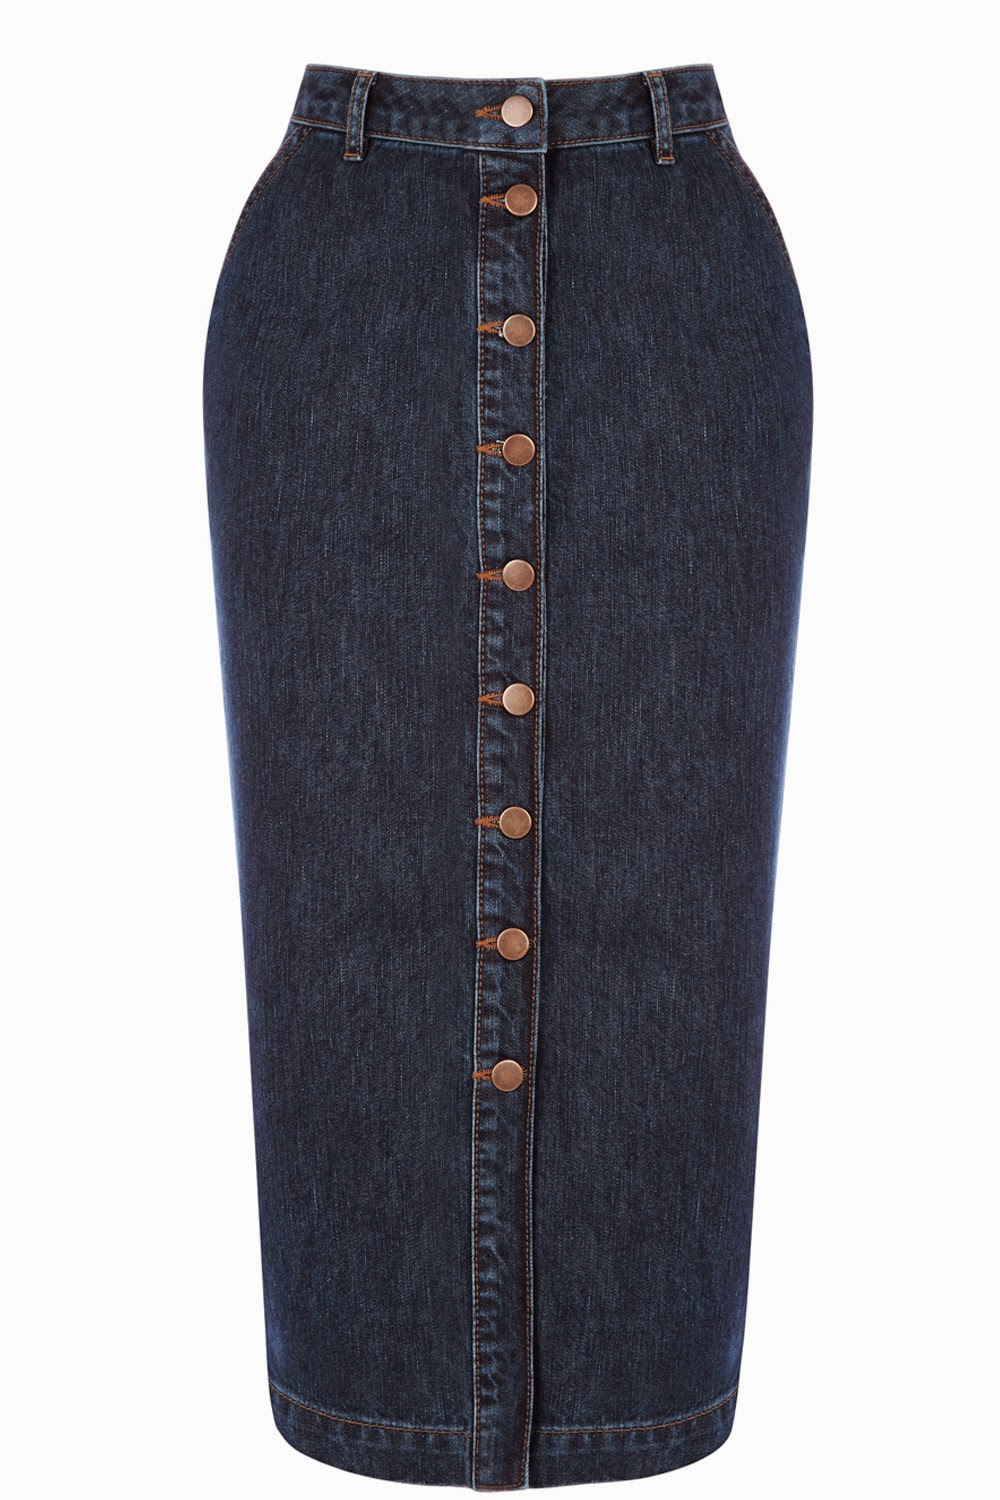 warehouse denim skirt,